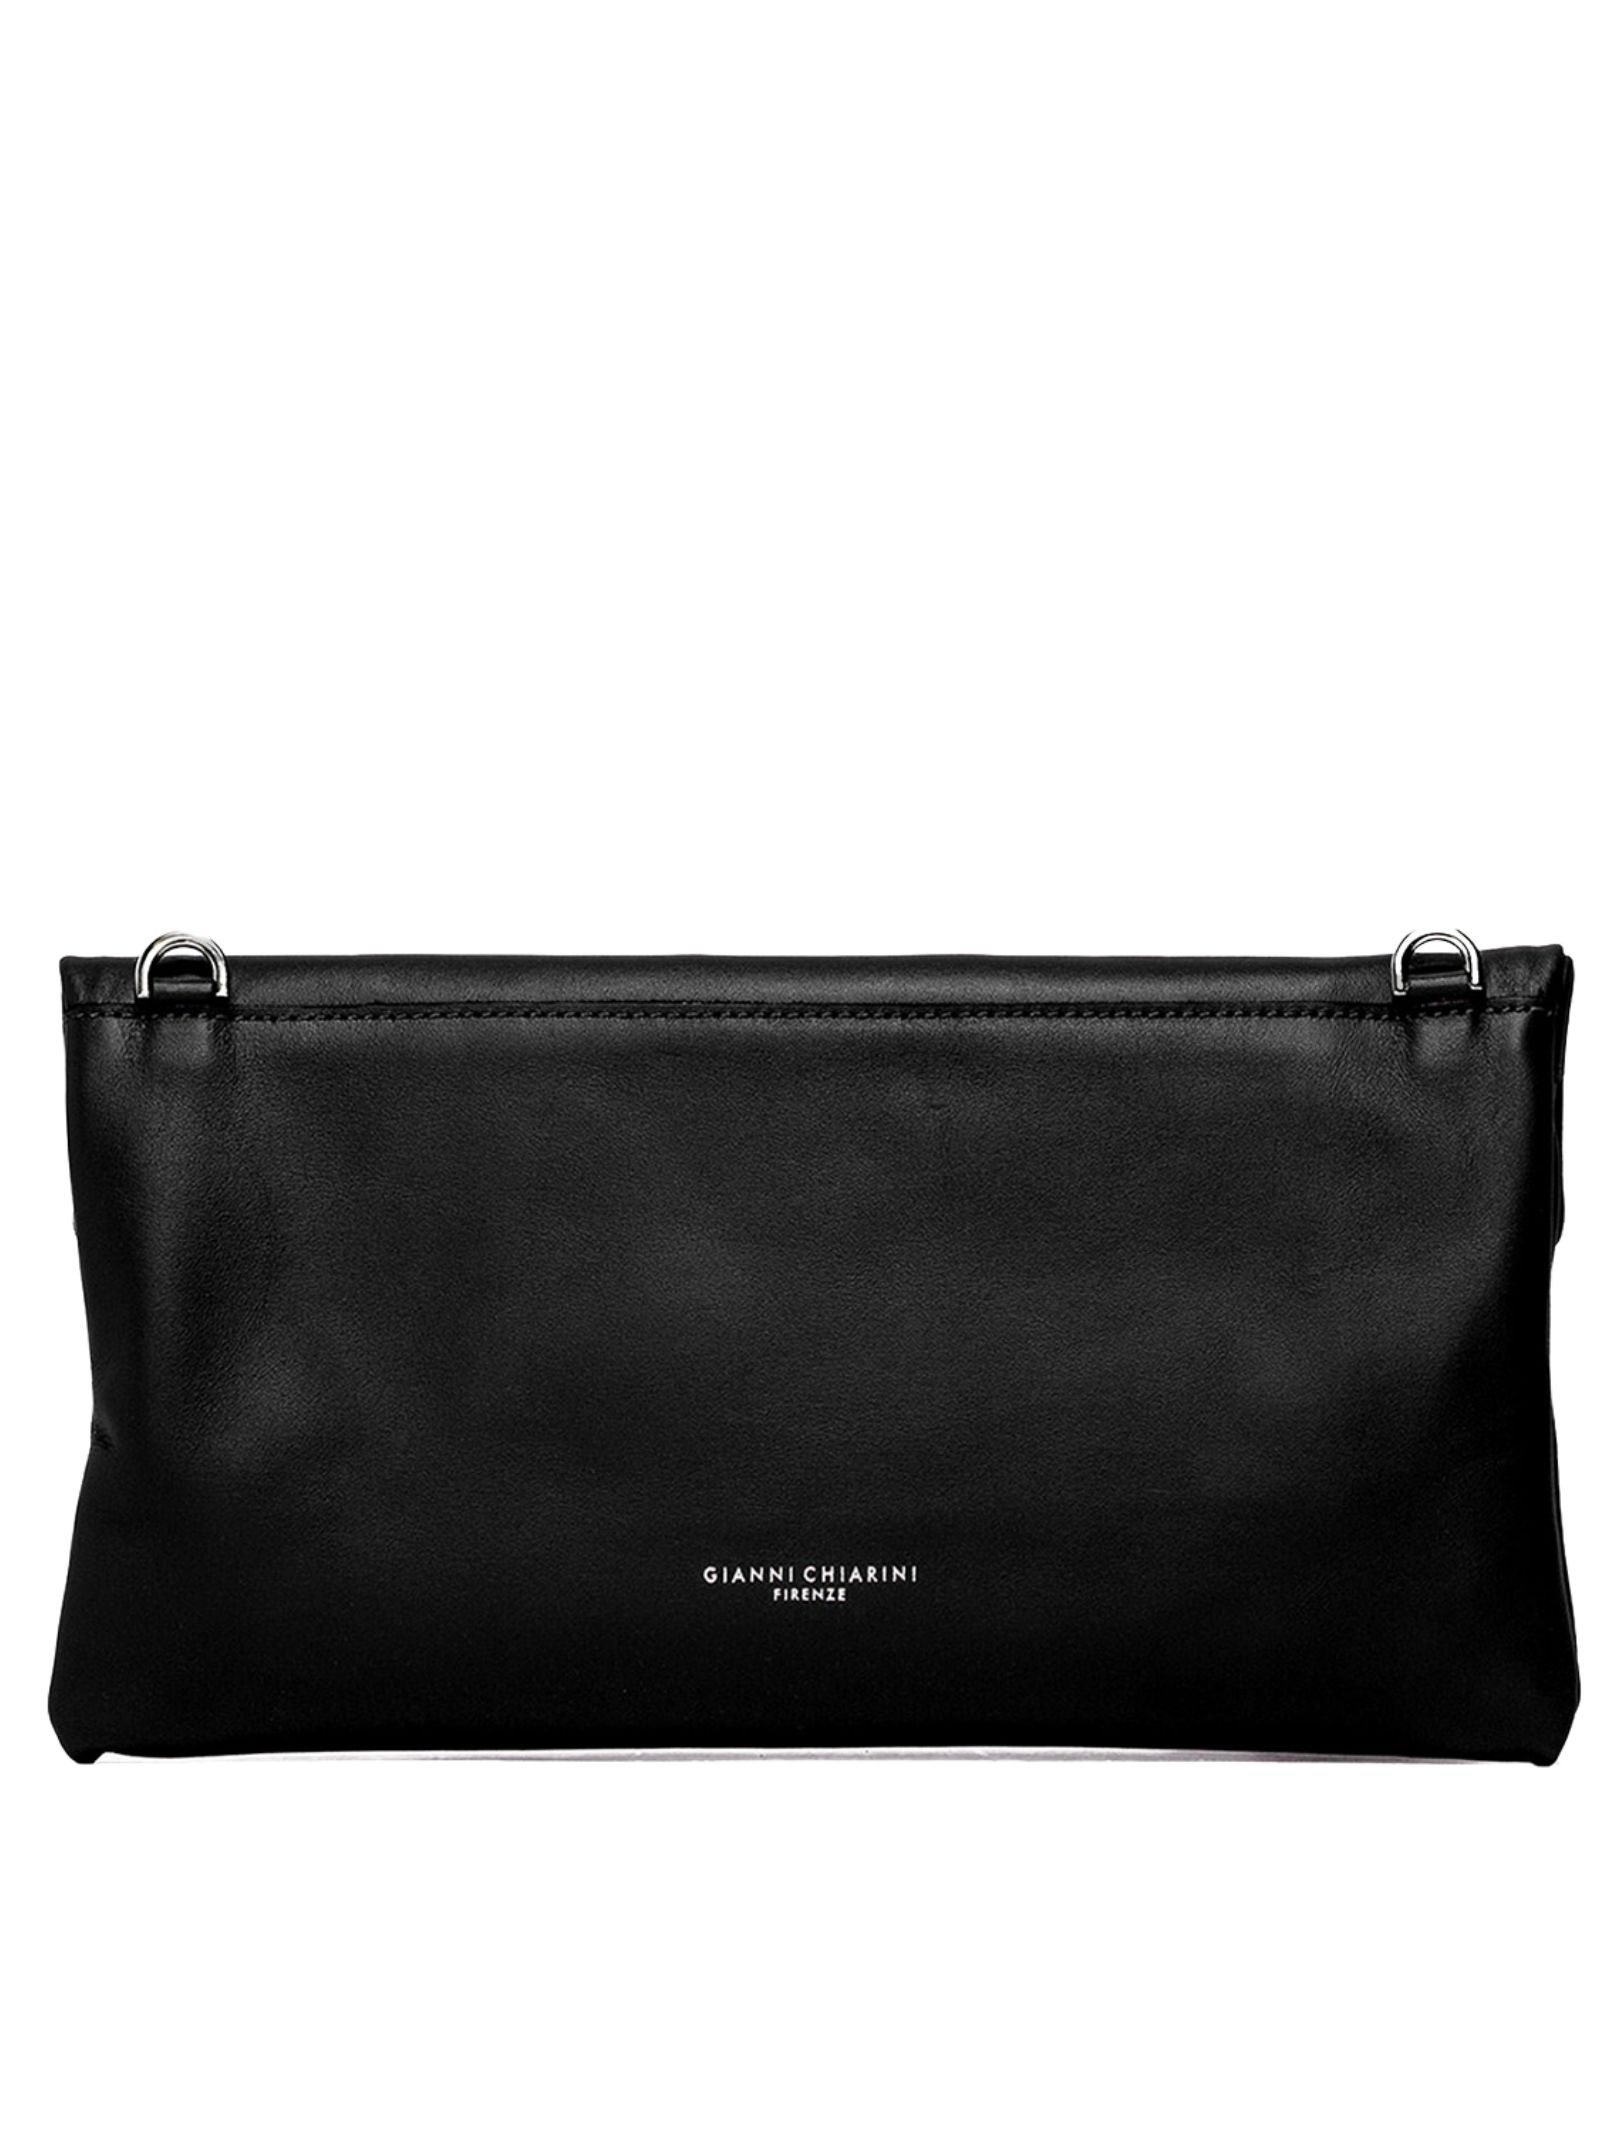 Cherry Women's Clutch Bag In Black Smooth Leather With Tone Removable Shoulder Strap Gianni Chiarini | Bags and backpacks | BS7375001